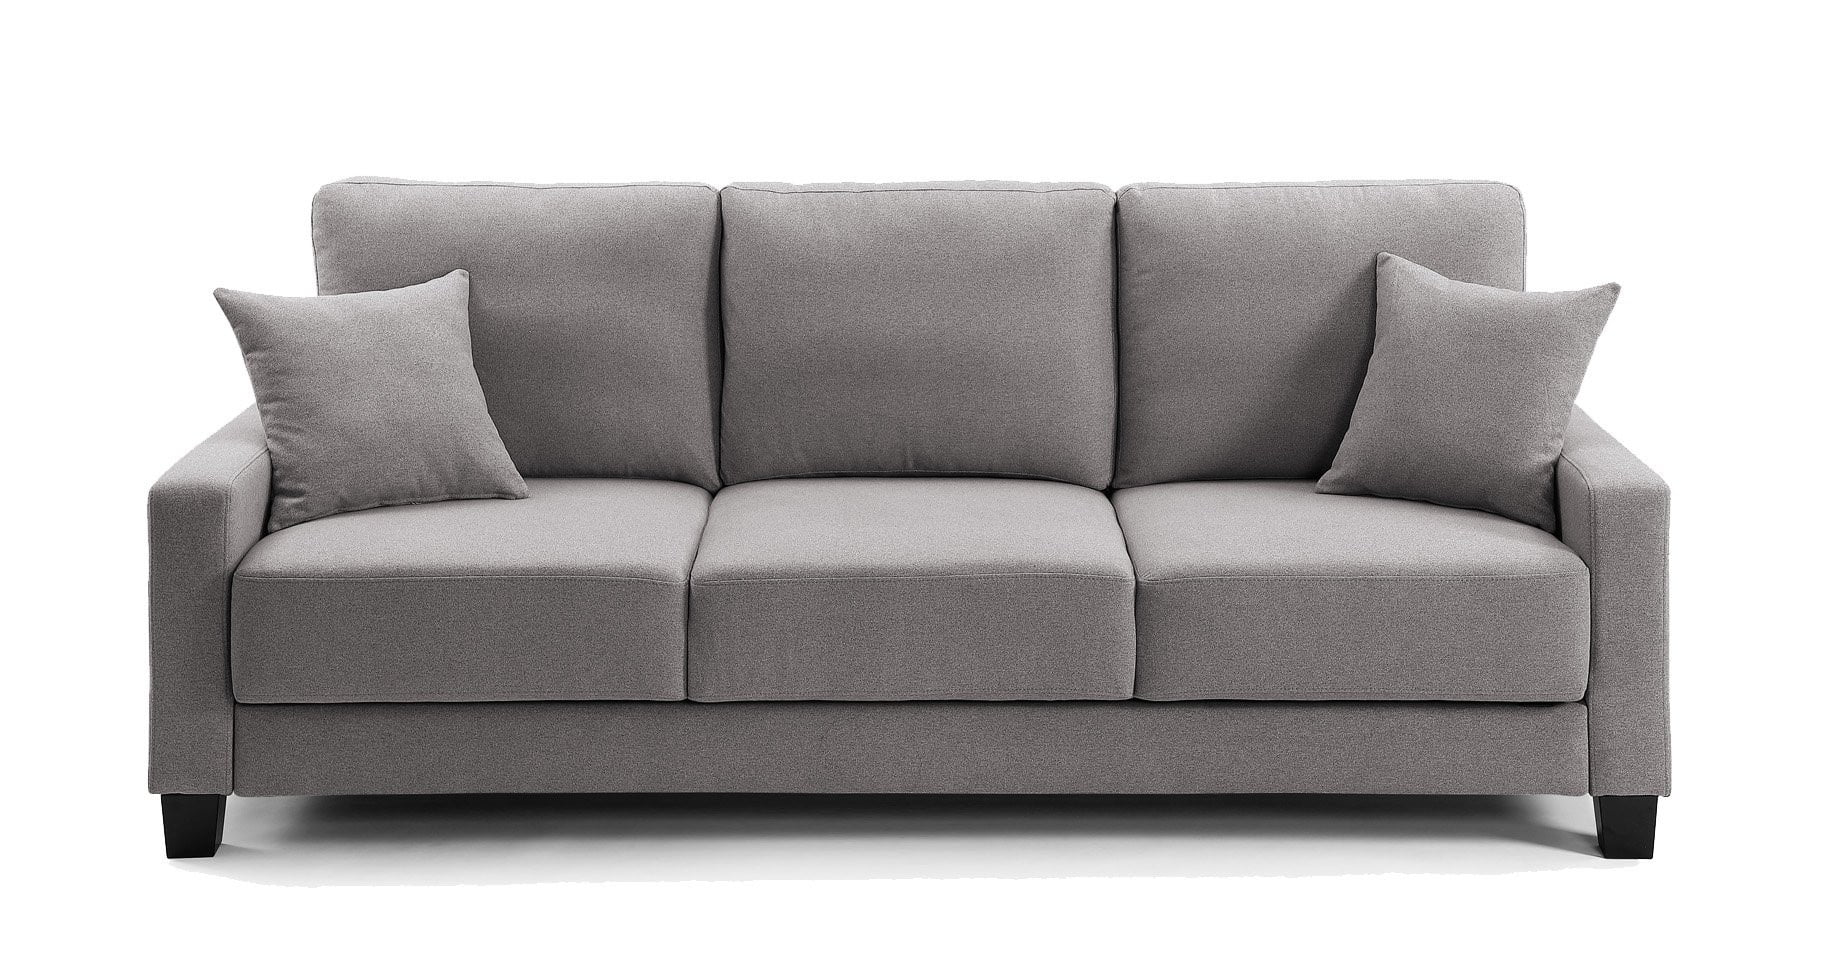 Barletta Full Size Sealy Sofa Sleeper Convertible - sofacreations